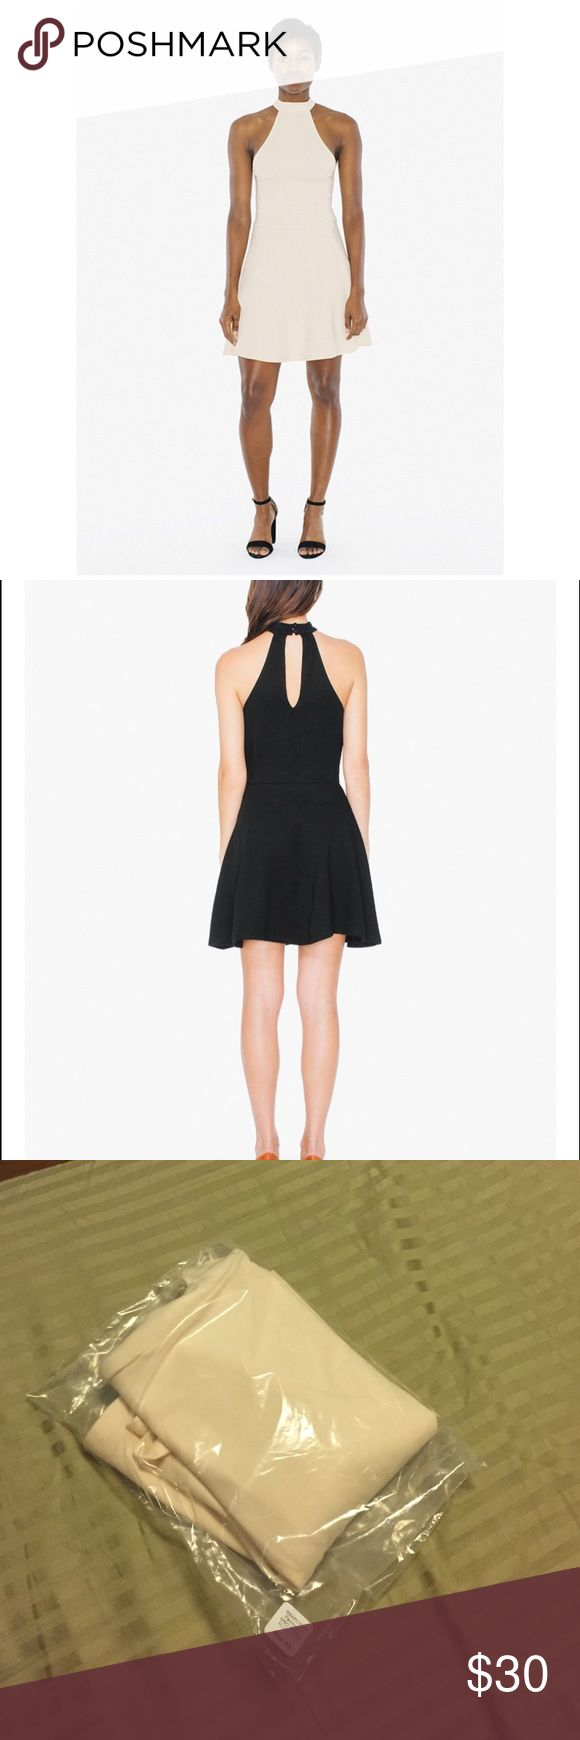 🆕 American Apparel High Neck Halter Trapeze Tent New in bag American Apparel high mock neck skater dress with back keyhole cutout. Never worn, only tried on. American Apparel Dresses Mini